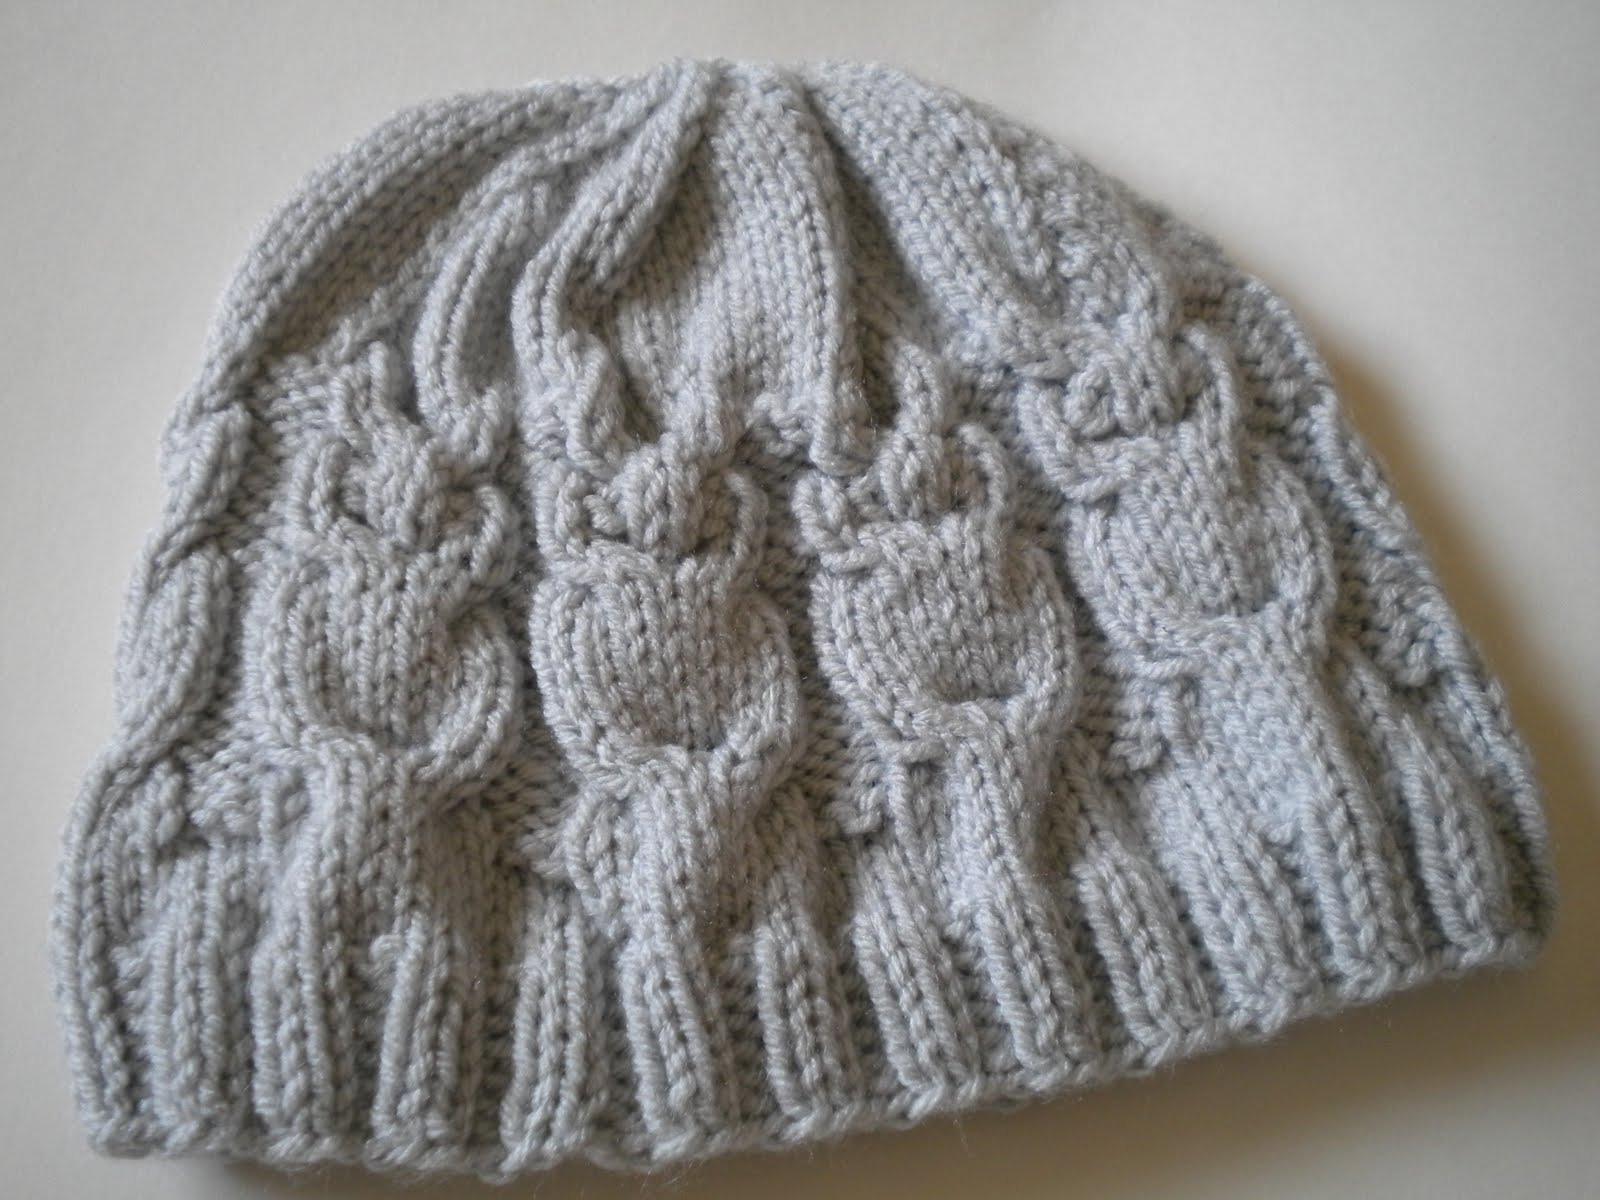 Free Knitting Patterns For Baby Owl Hats : Free Knitted Toy Owl Patterns images